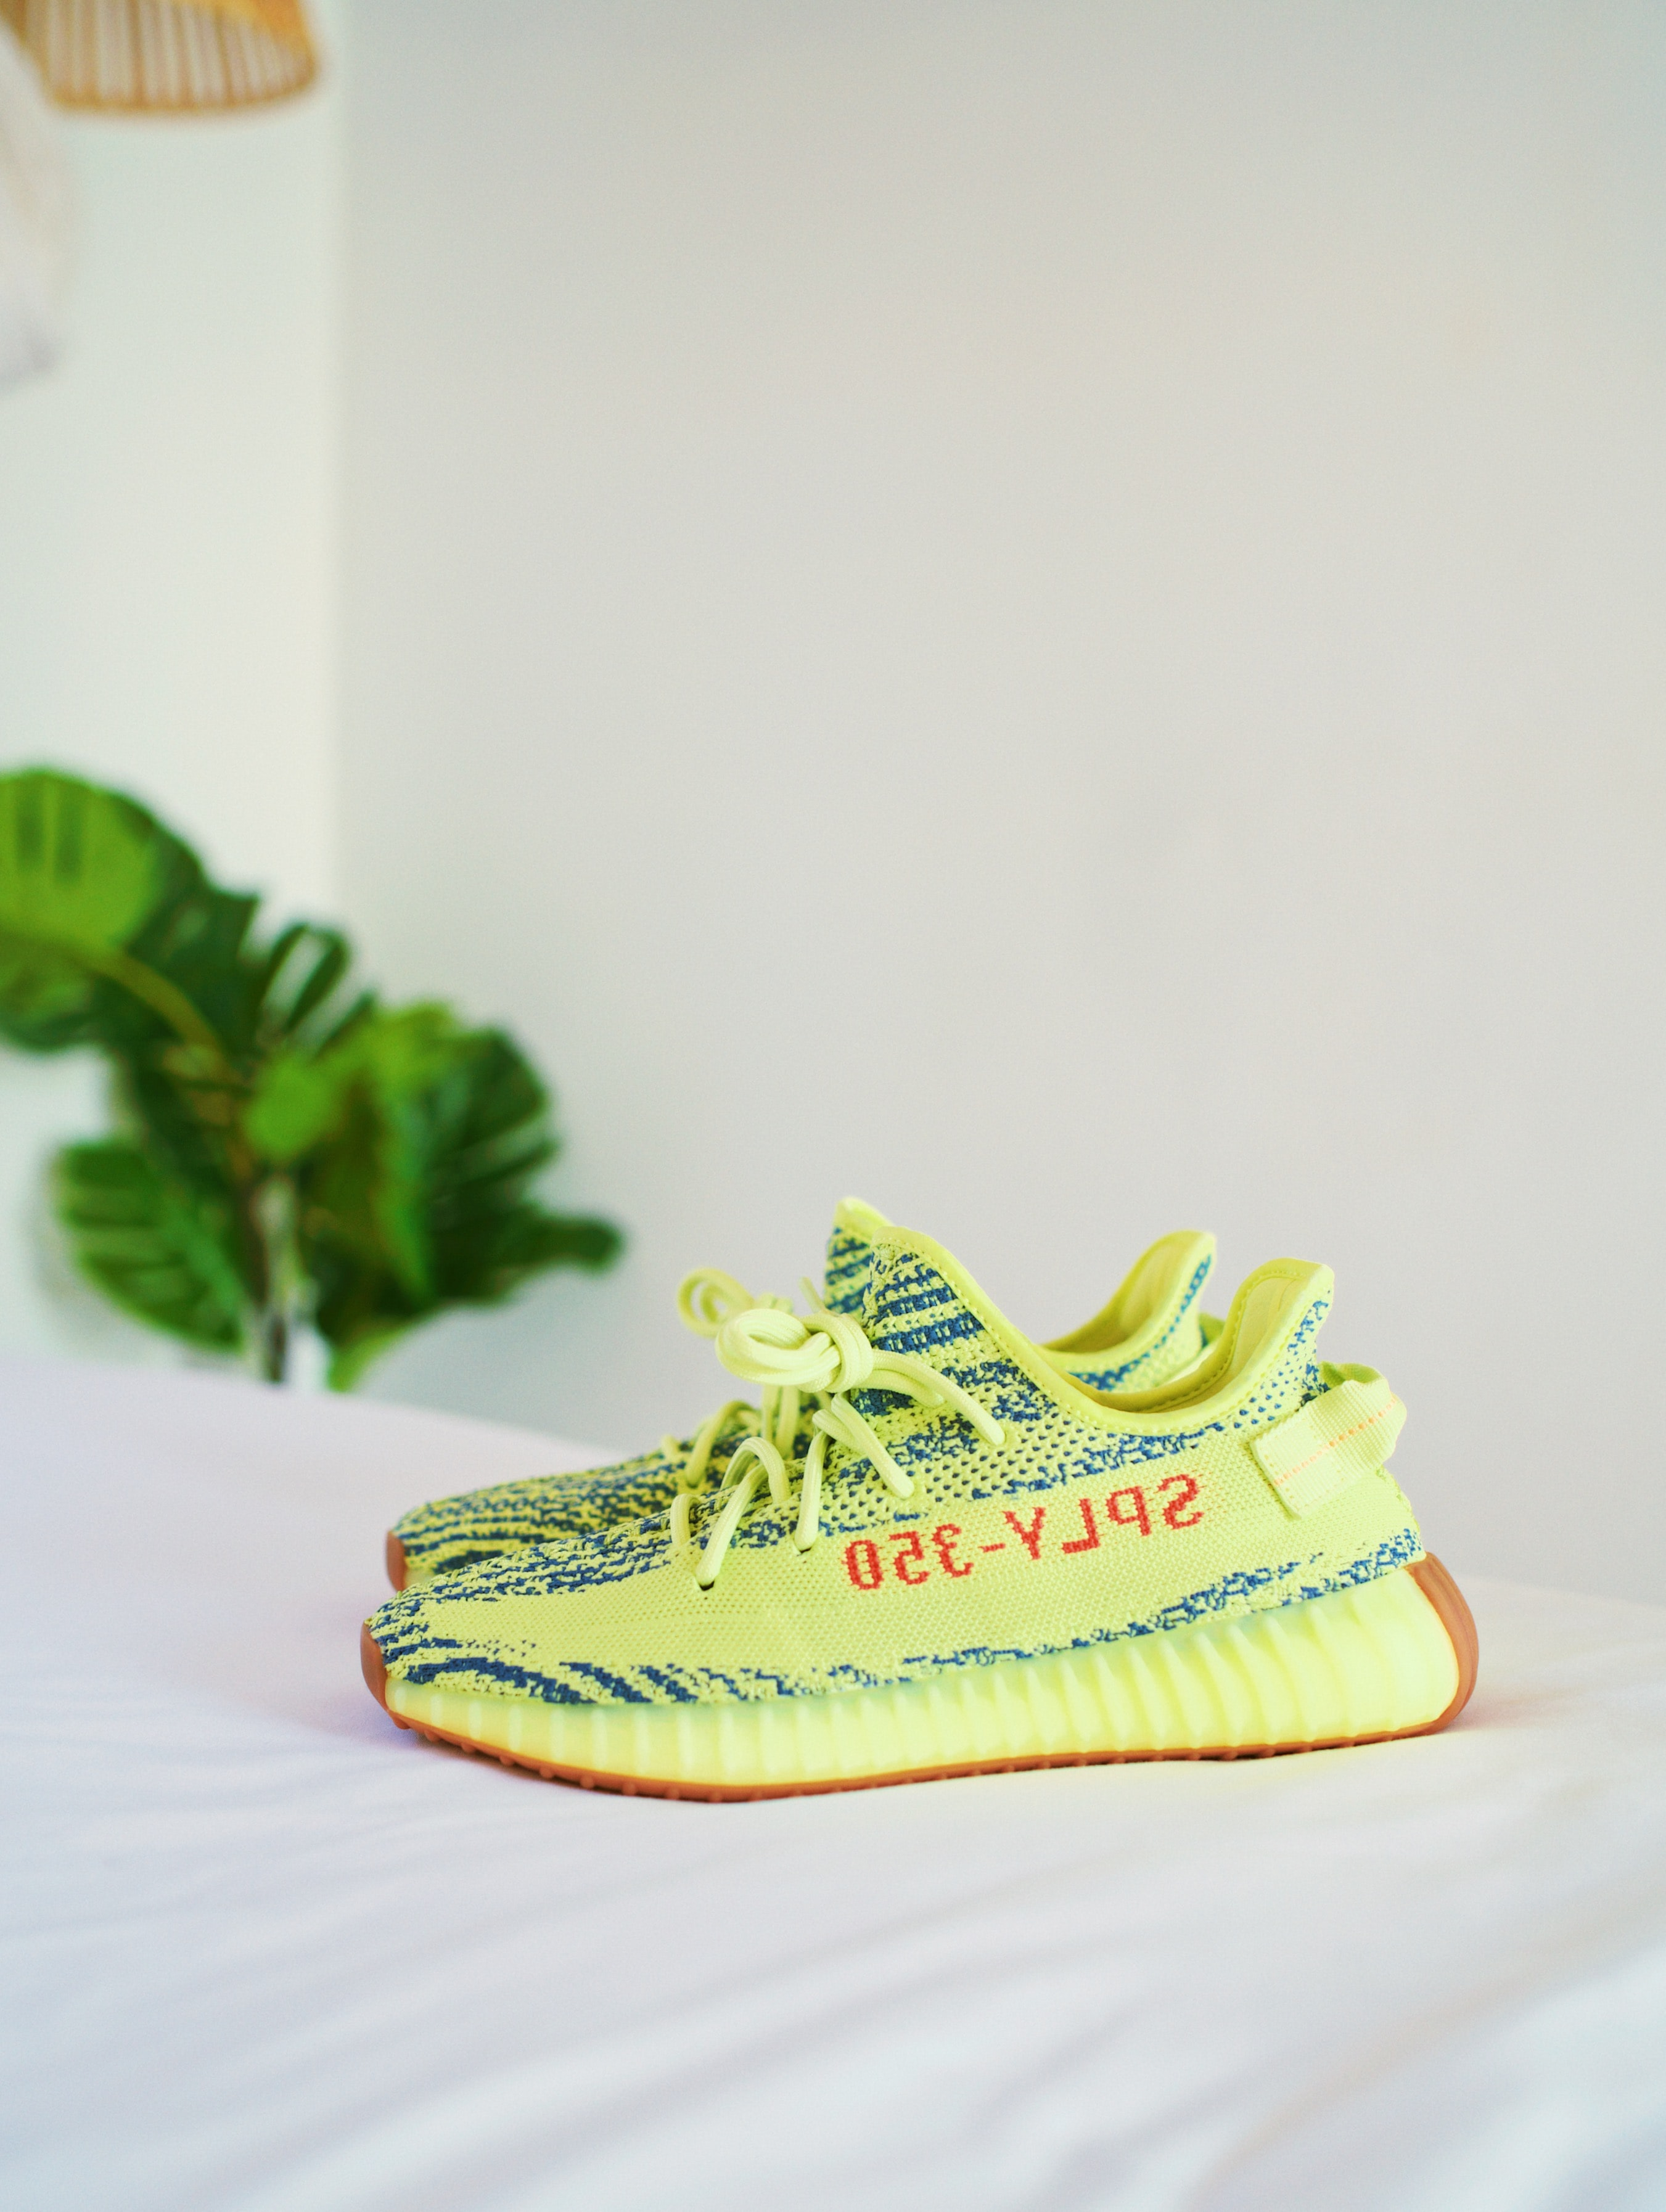 frozen yellow Adidas Yeezy Boost v2's on white bedspread